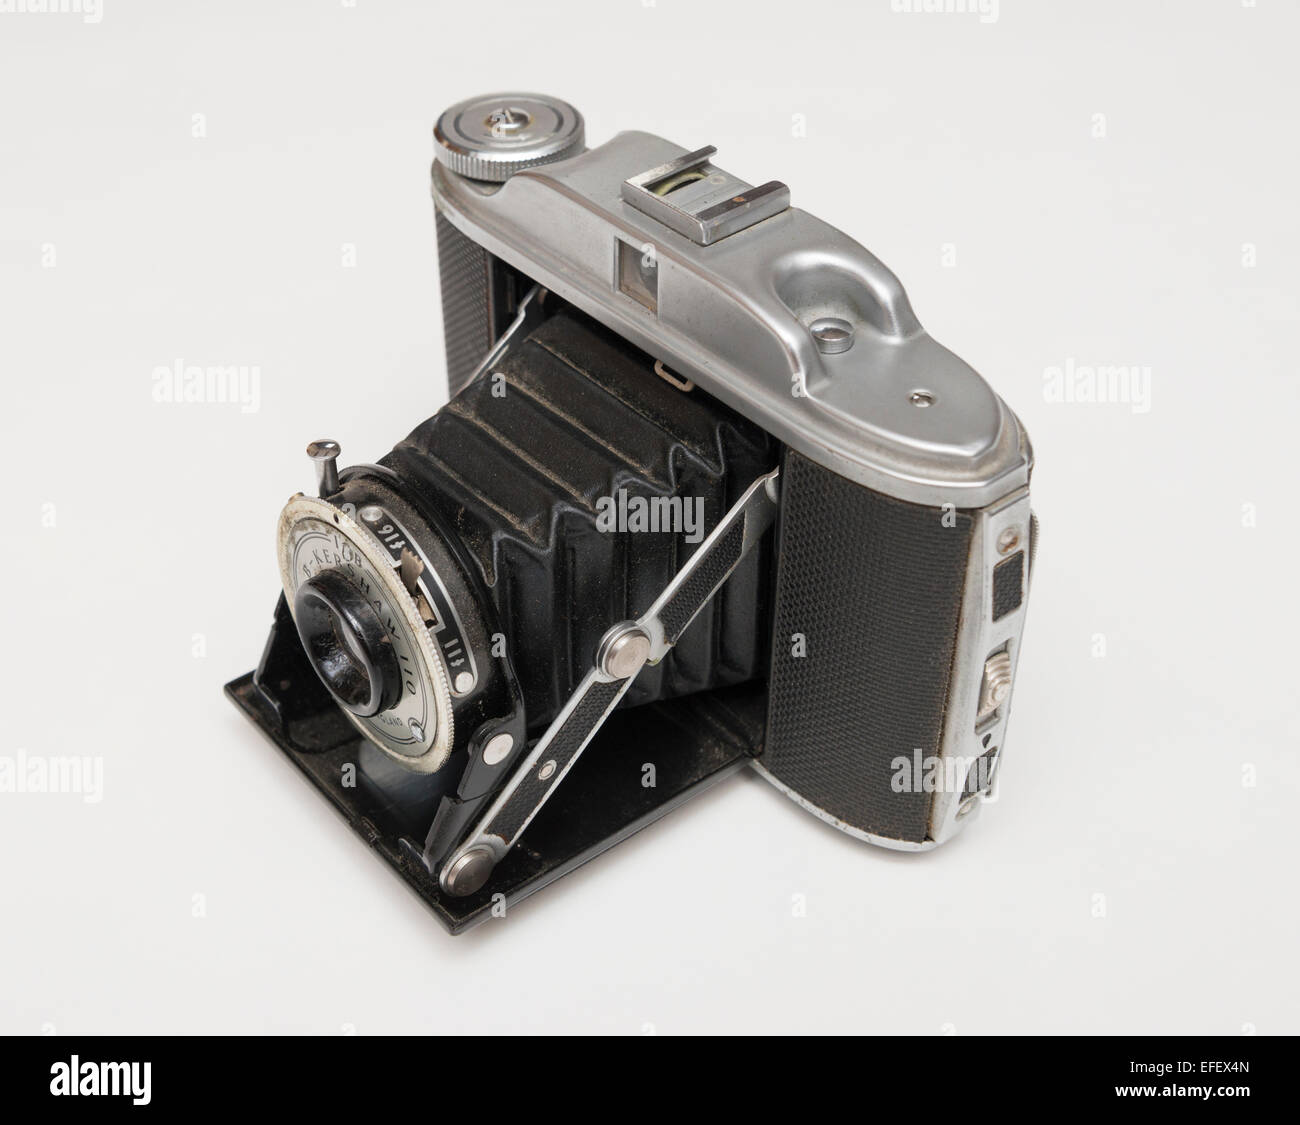 Kershaw 110 folding camera, first made in 1954 by G B Kershaw of Leeds in England. - Stock Image